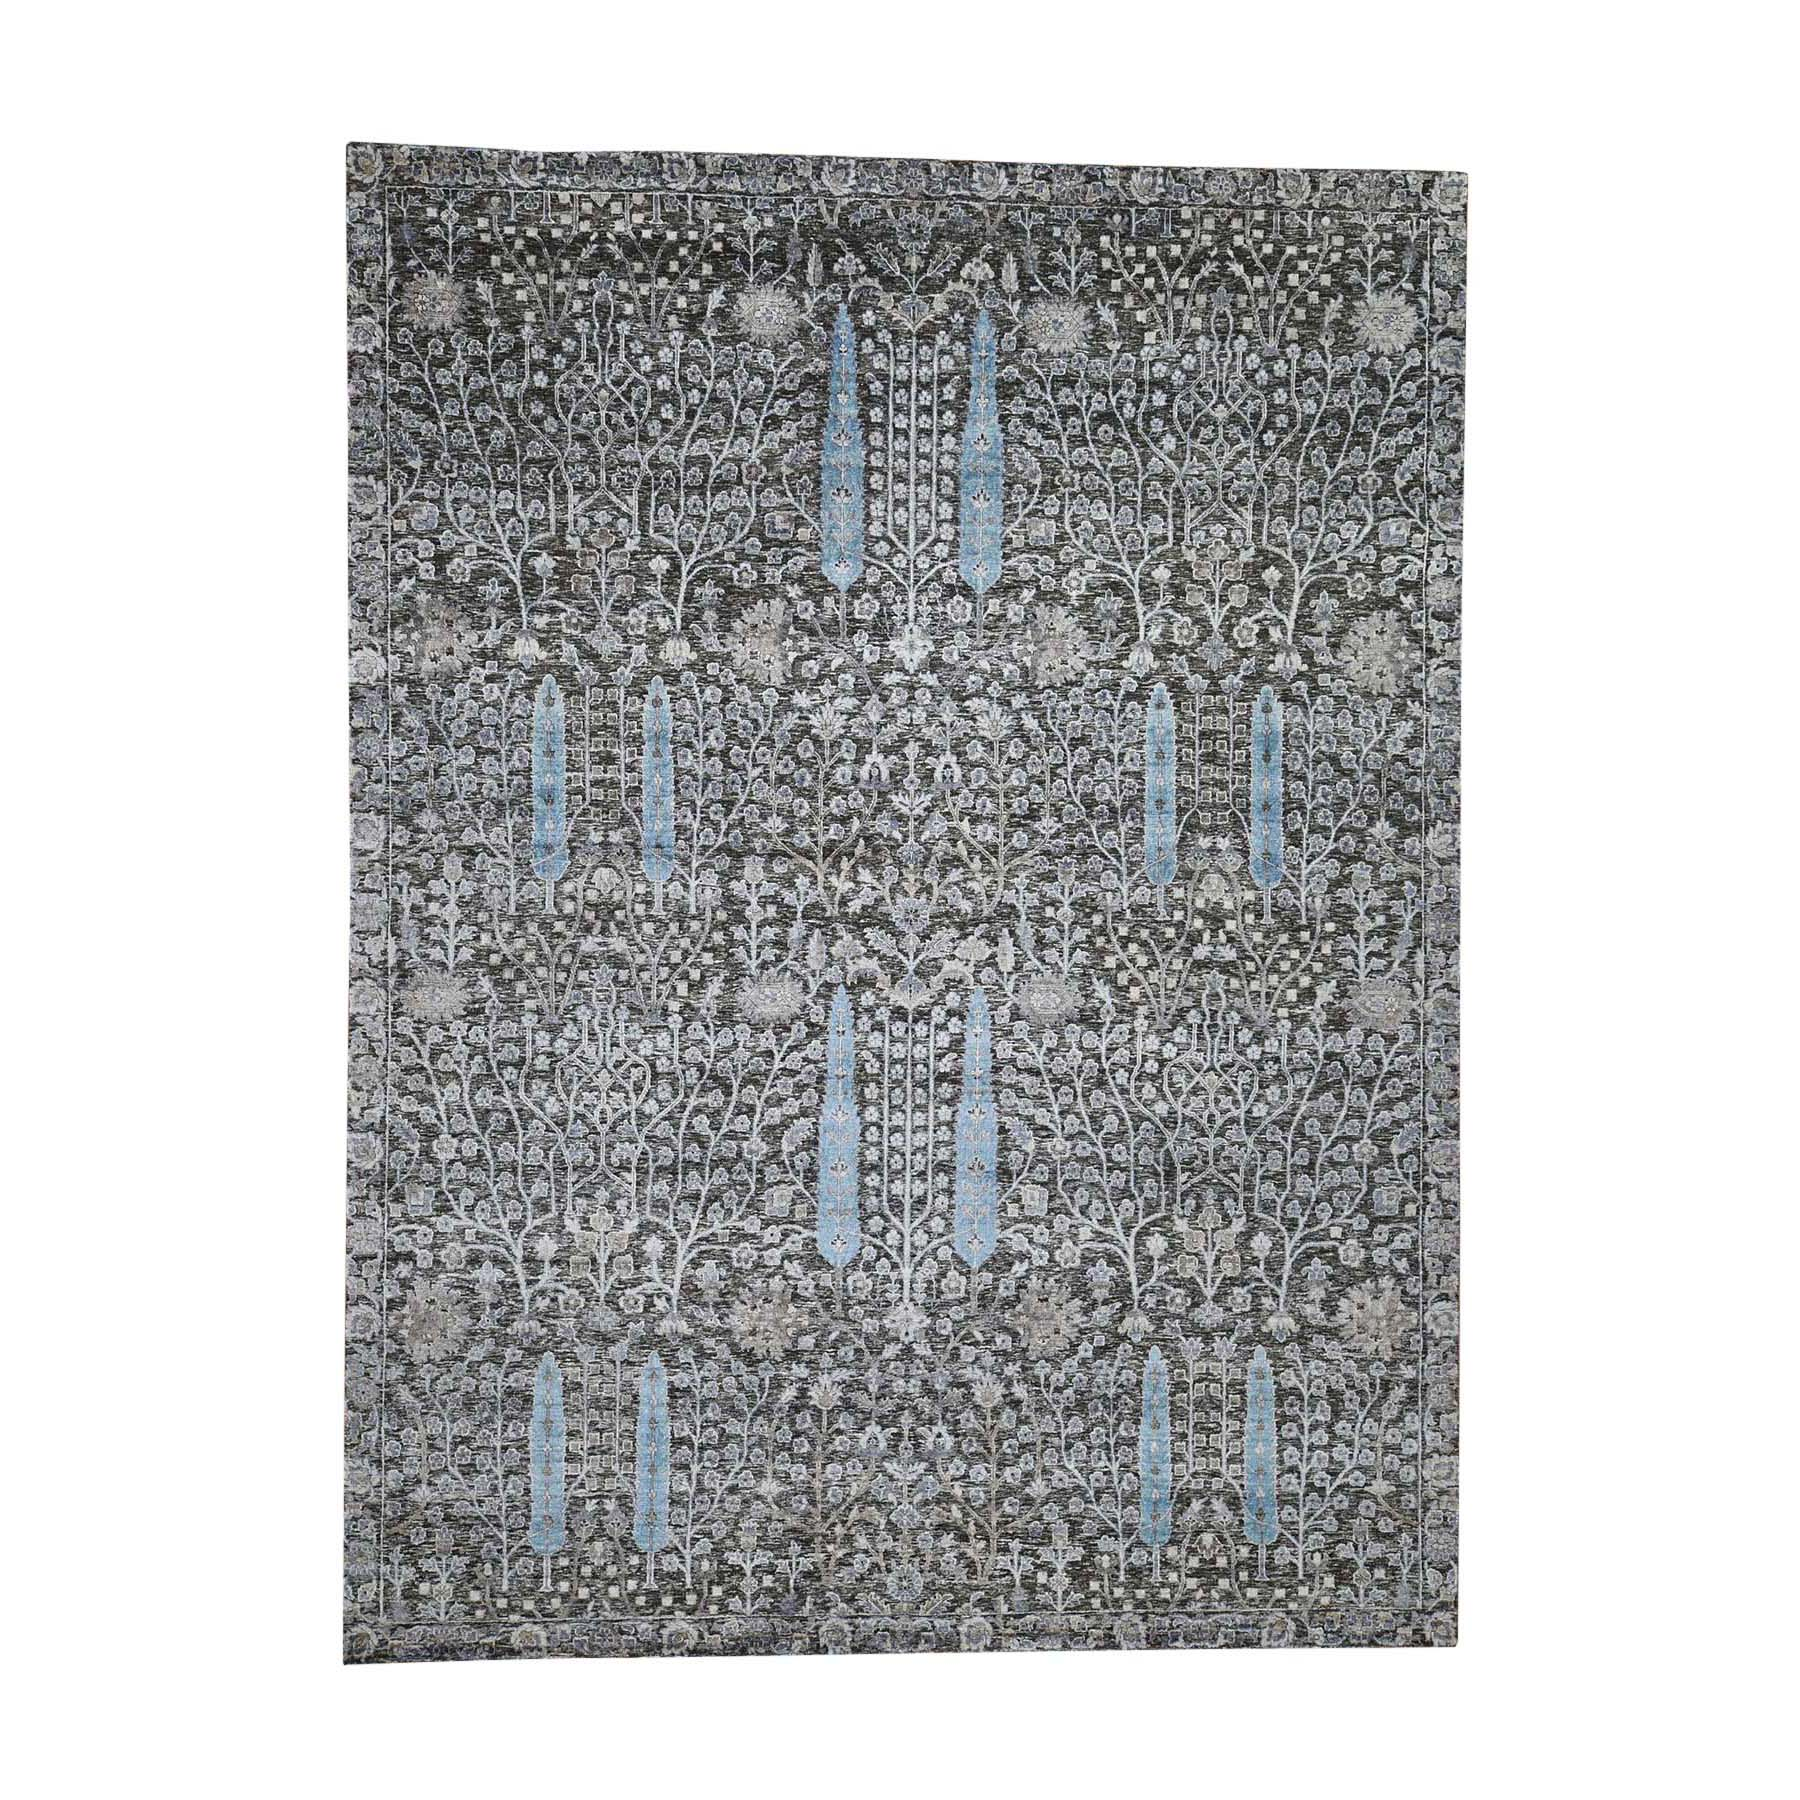 Pirniakan Collection Hand Knotted Grey Rug No: 0192338